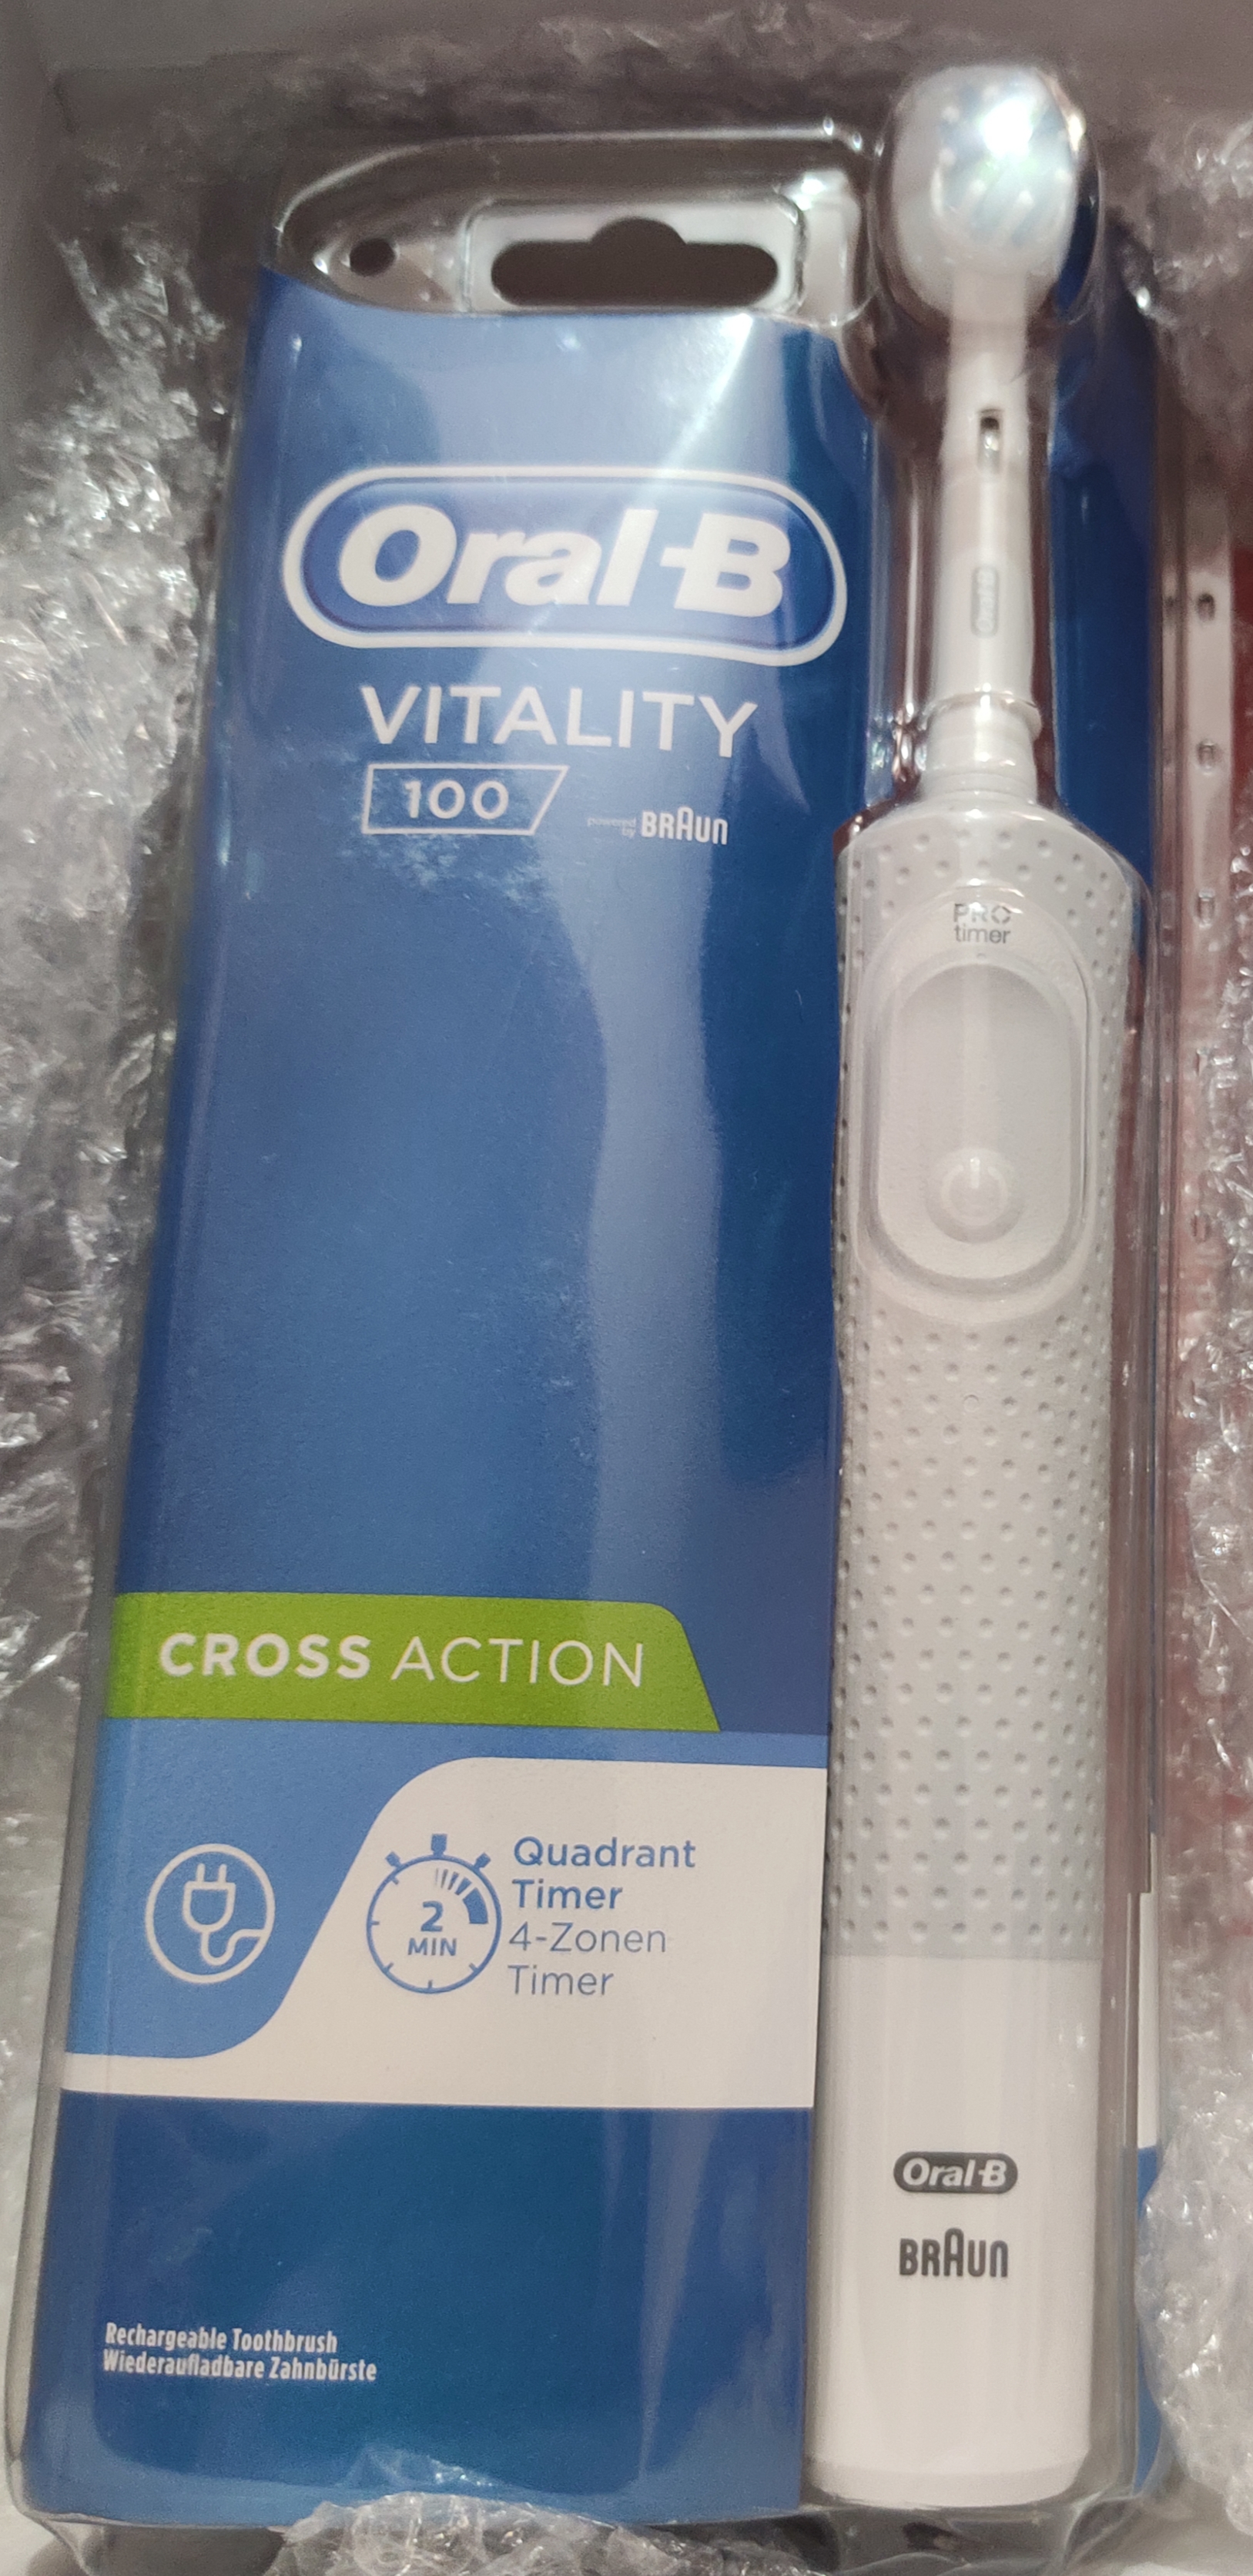 Oral-B Vitality Cross Action Electric Rechargeable Toothbrush -This is amazing!-By kanika_nathawat